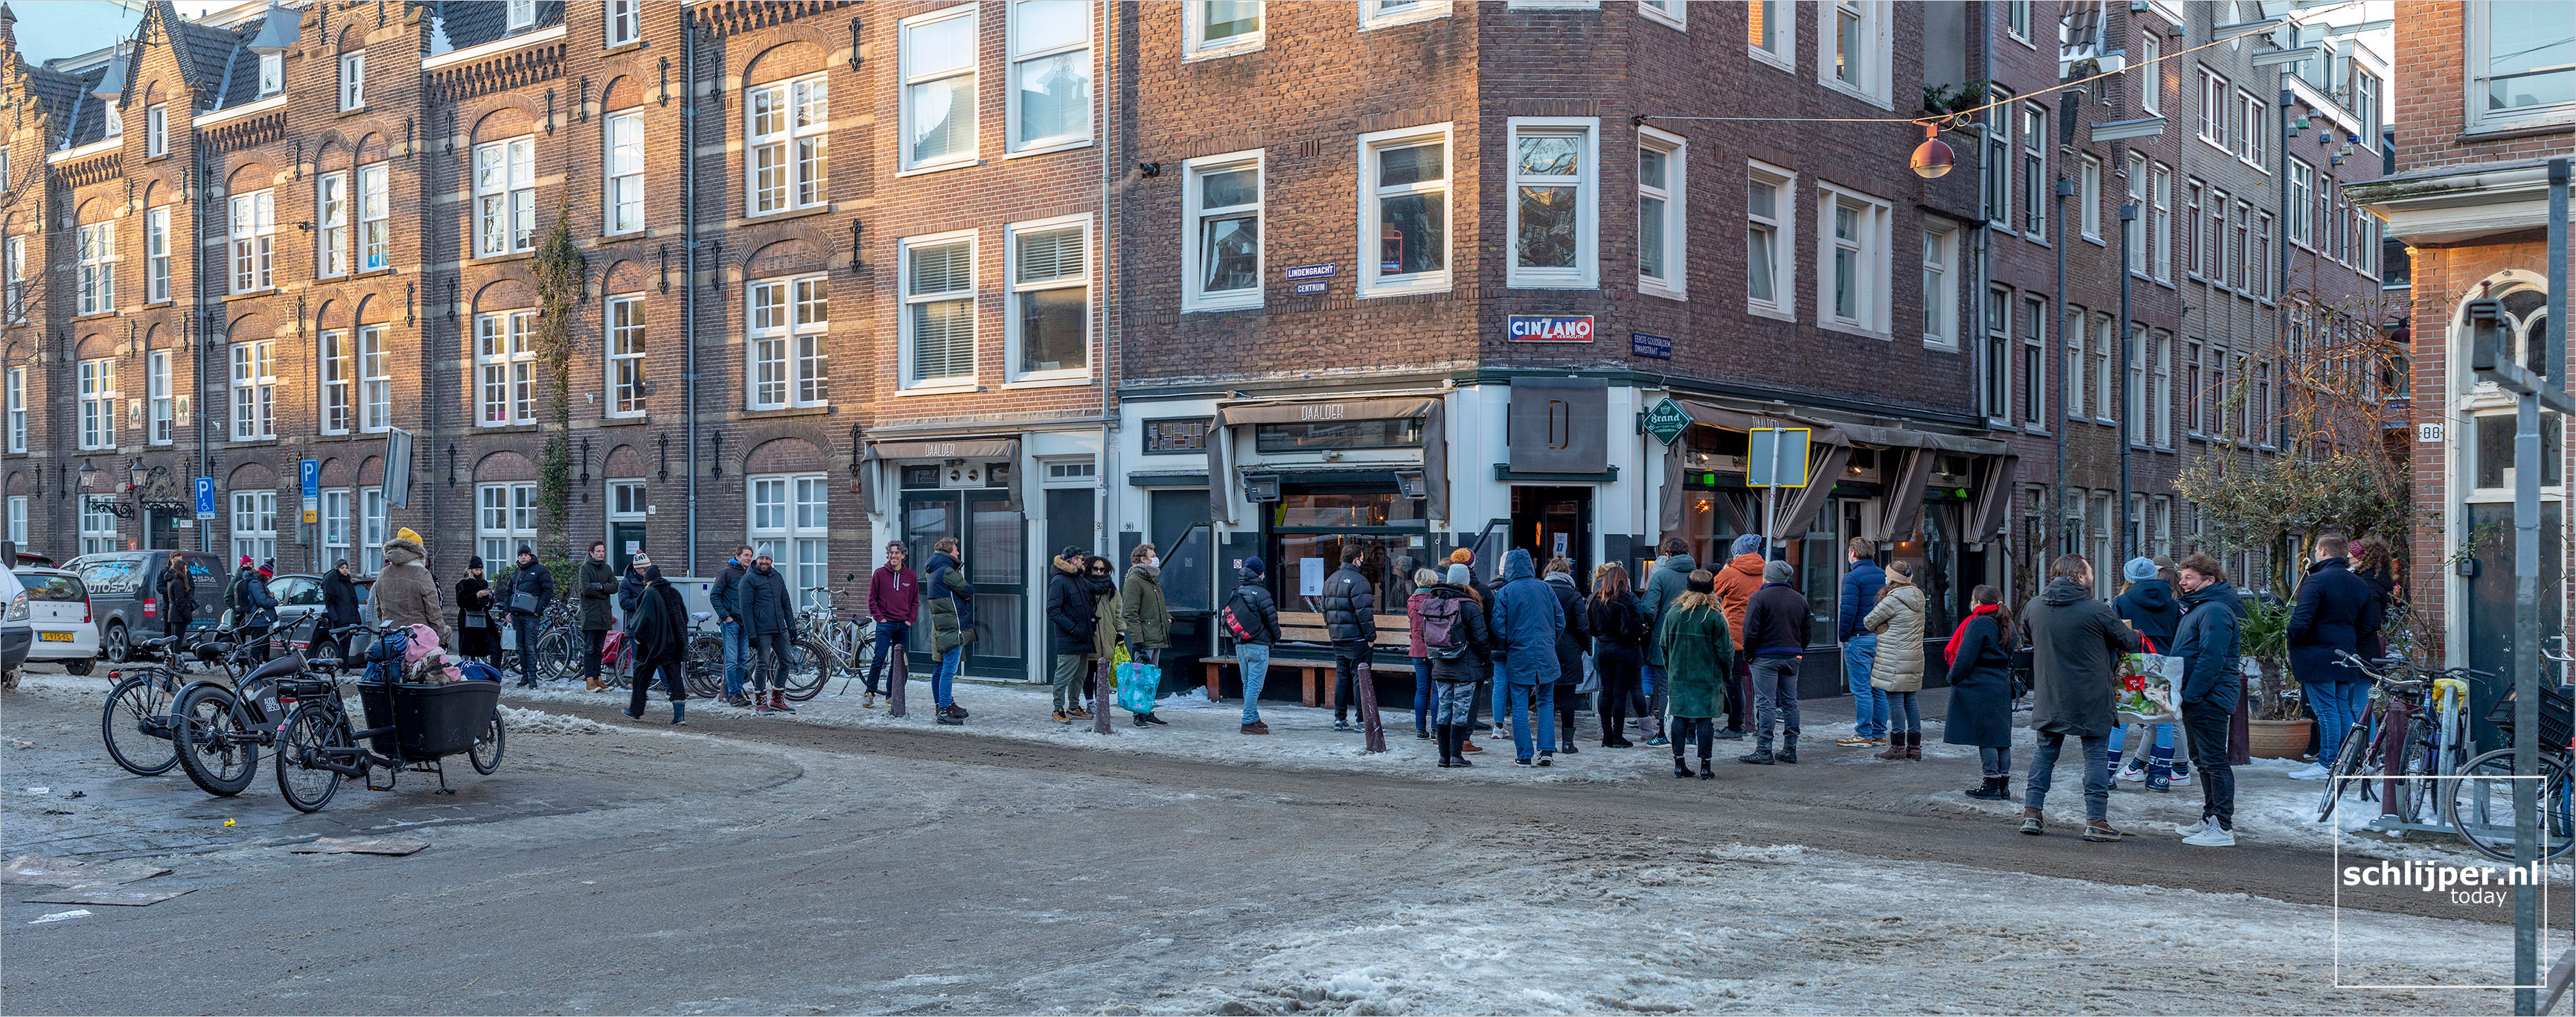 The Netherlands, Amsterdam, 13 februari 2021